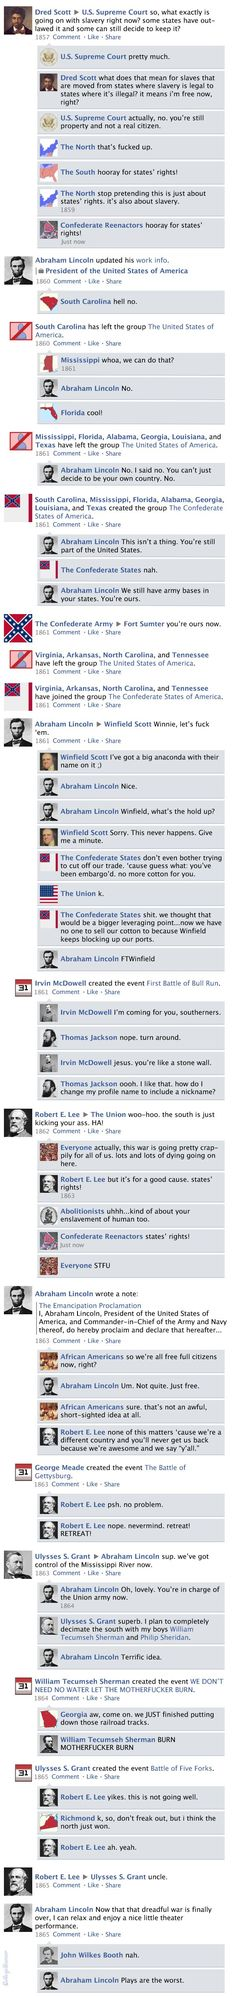 Facebook Timeline History of the U.S. Civil War - Sorry about the choice language in spots, but this is pretty good!